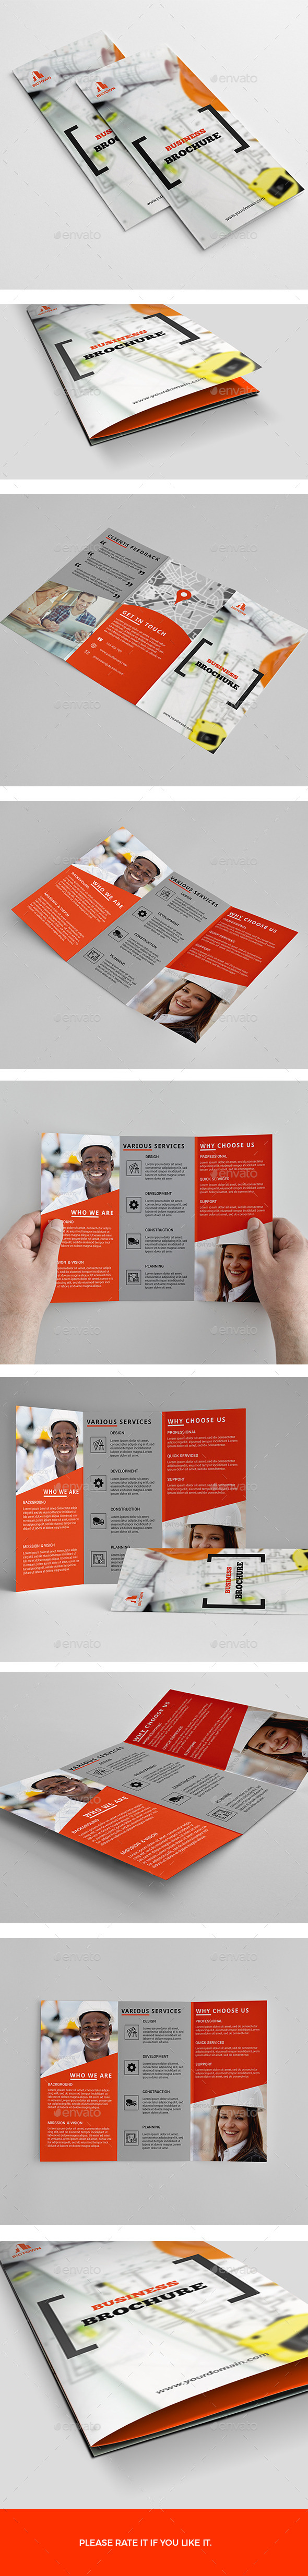 GraphicRiver Brochure-Trifold 11394021